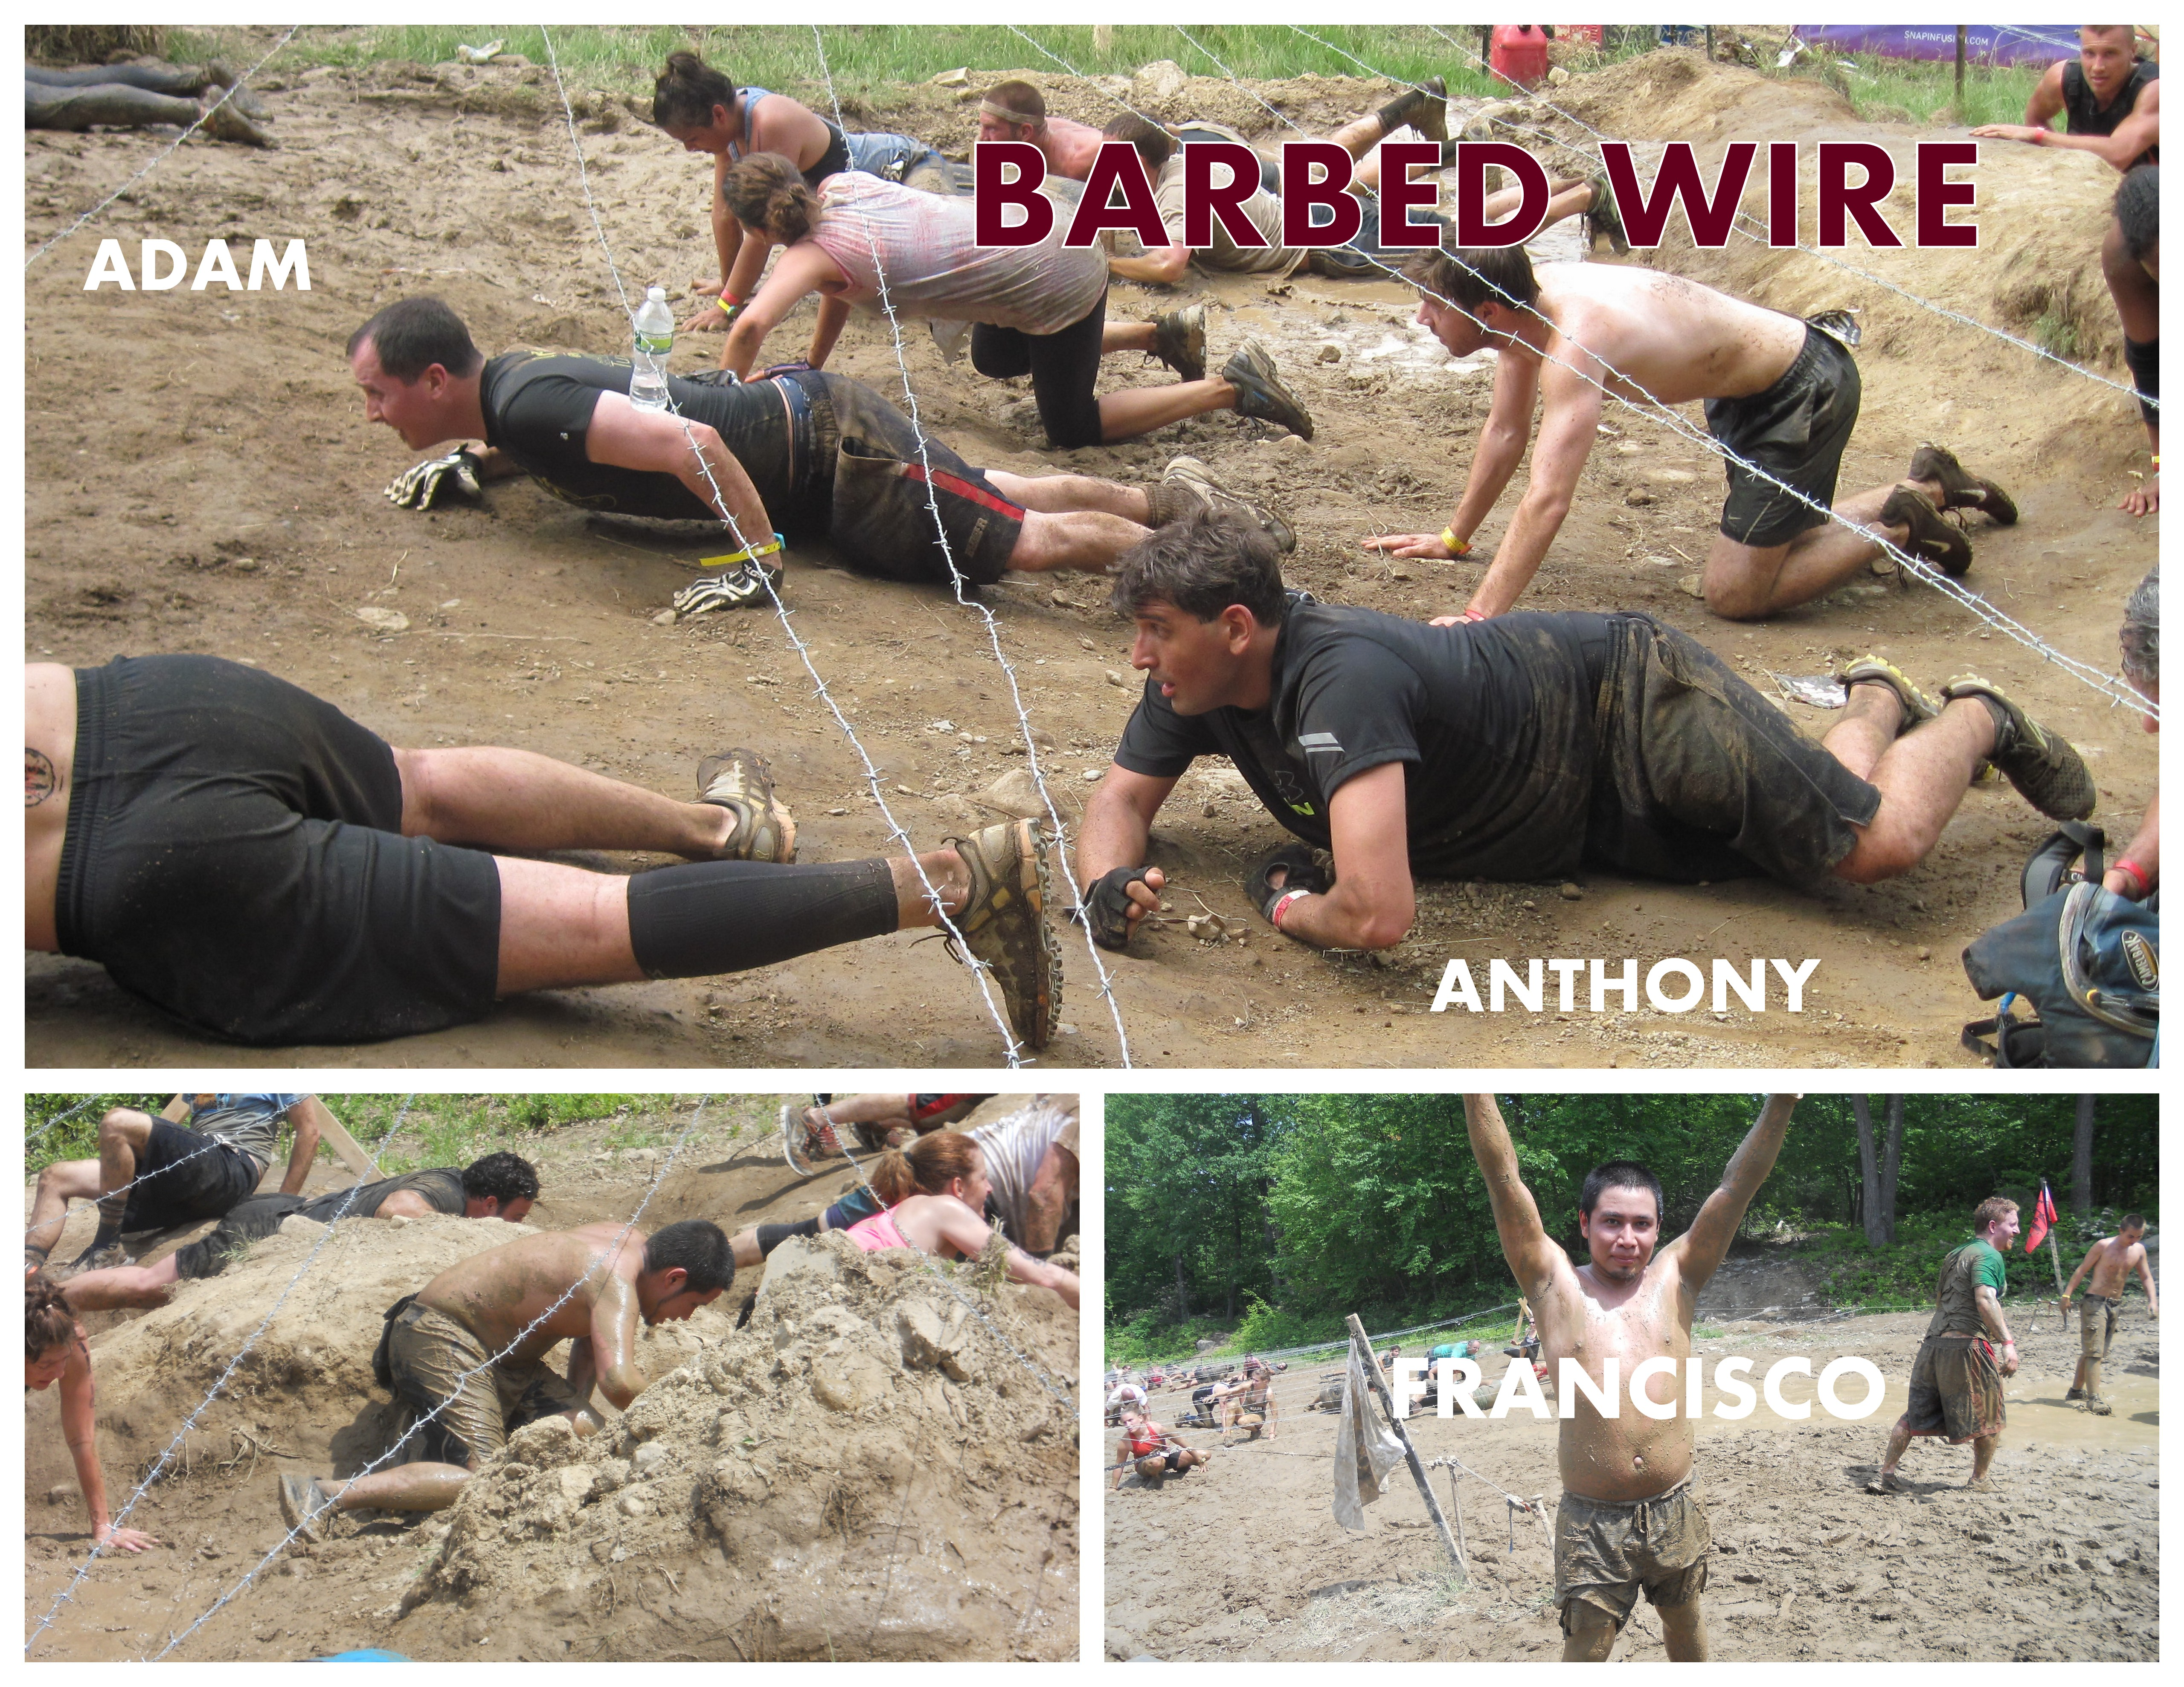 Spartan Race 2013. Collage.BARBED WIRE